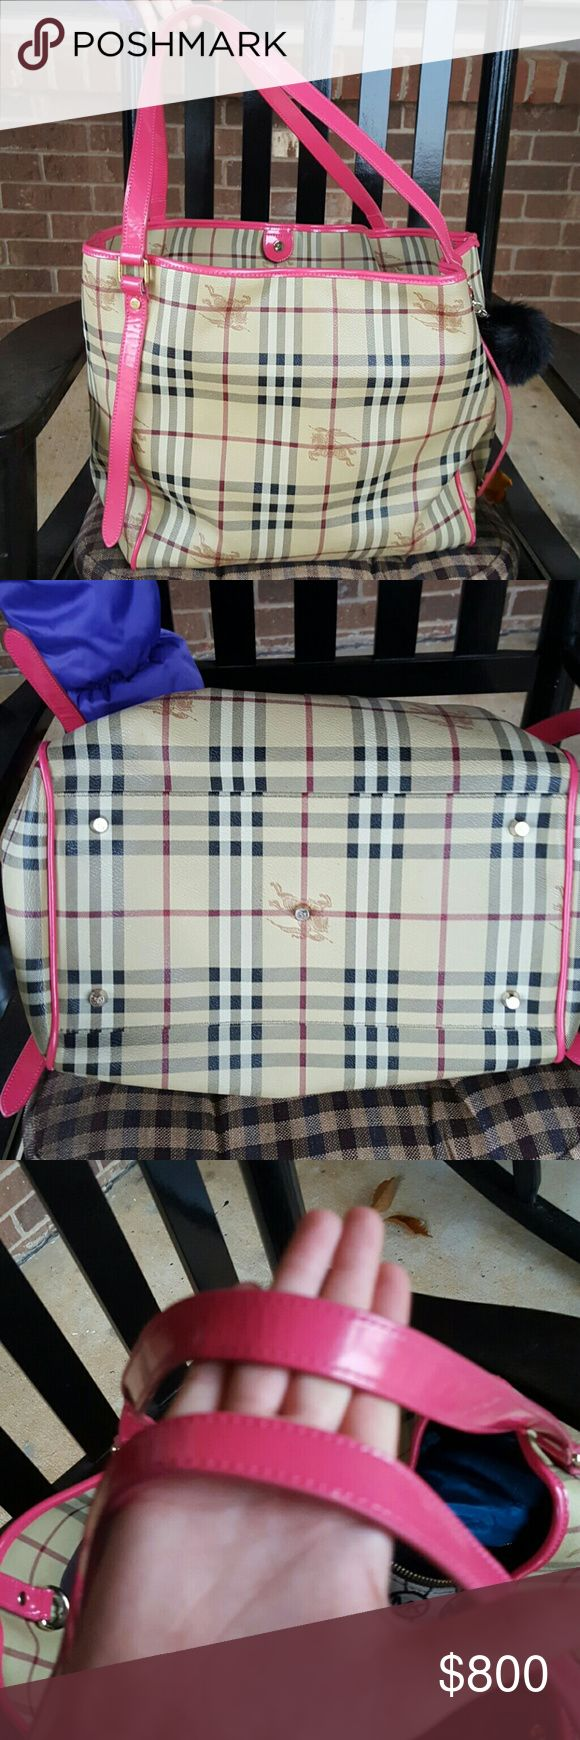 Large Burberry Haymarket Authentic Large Burberry Haymarket with pink trim in excellent condition. Is a great tote with plenty of room.  Made in Italy. A detachable pouch included. No dust bag. Burberry Bags Shoulder Bags